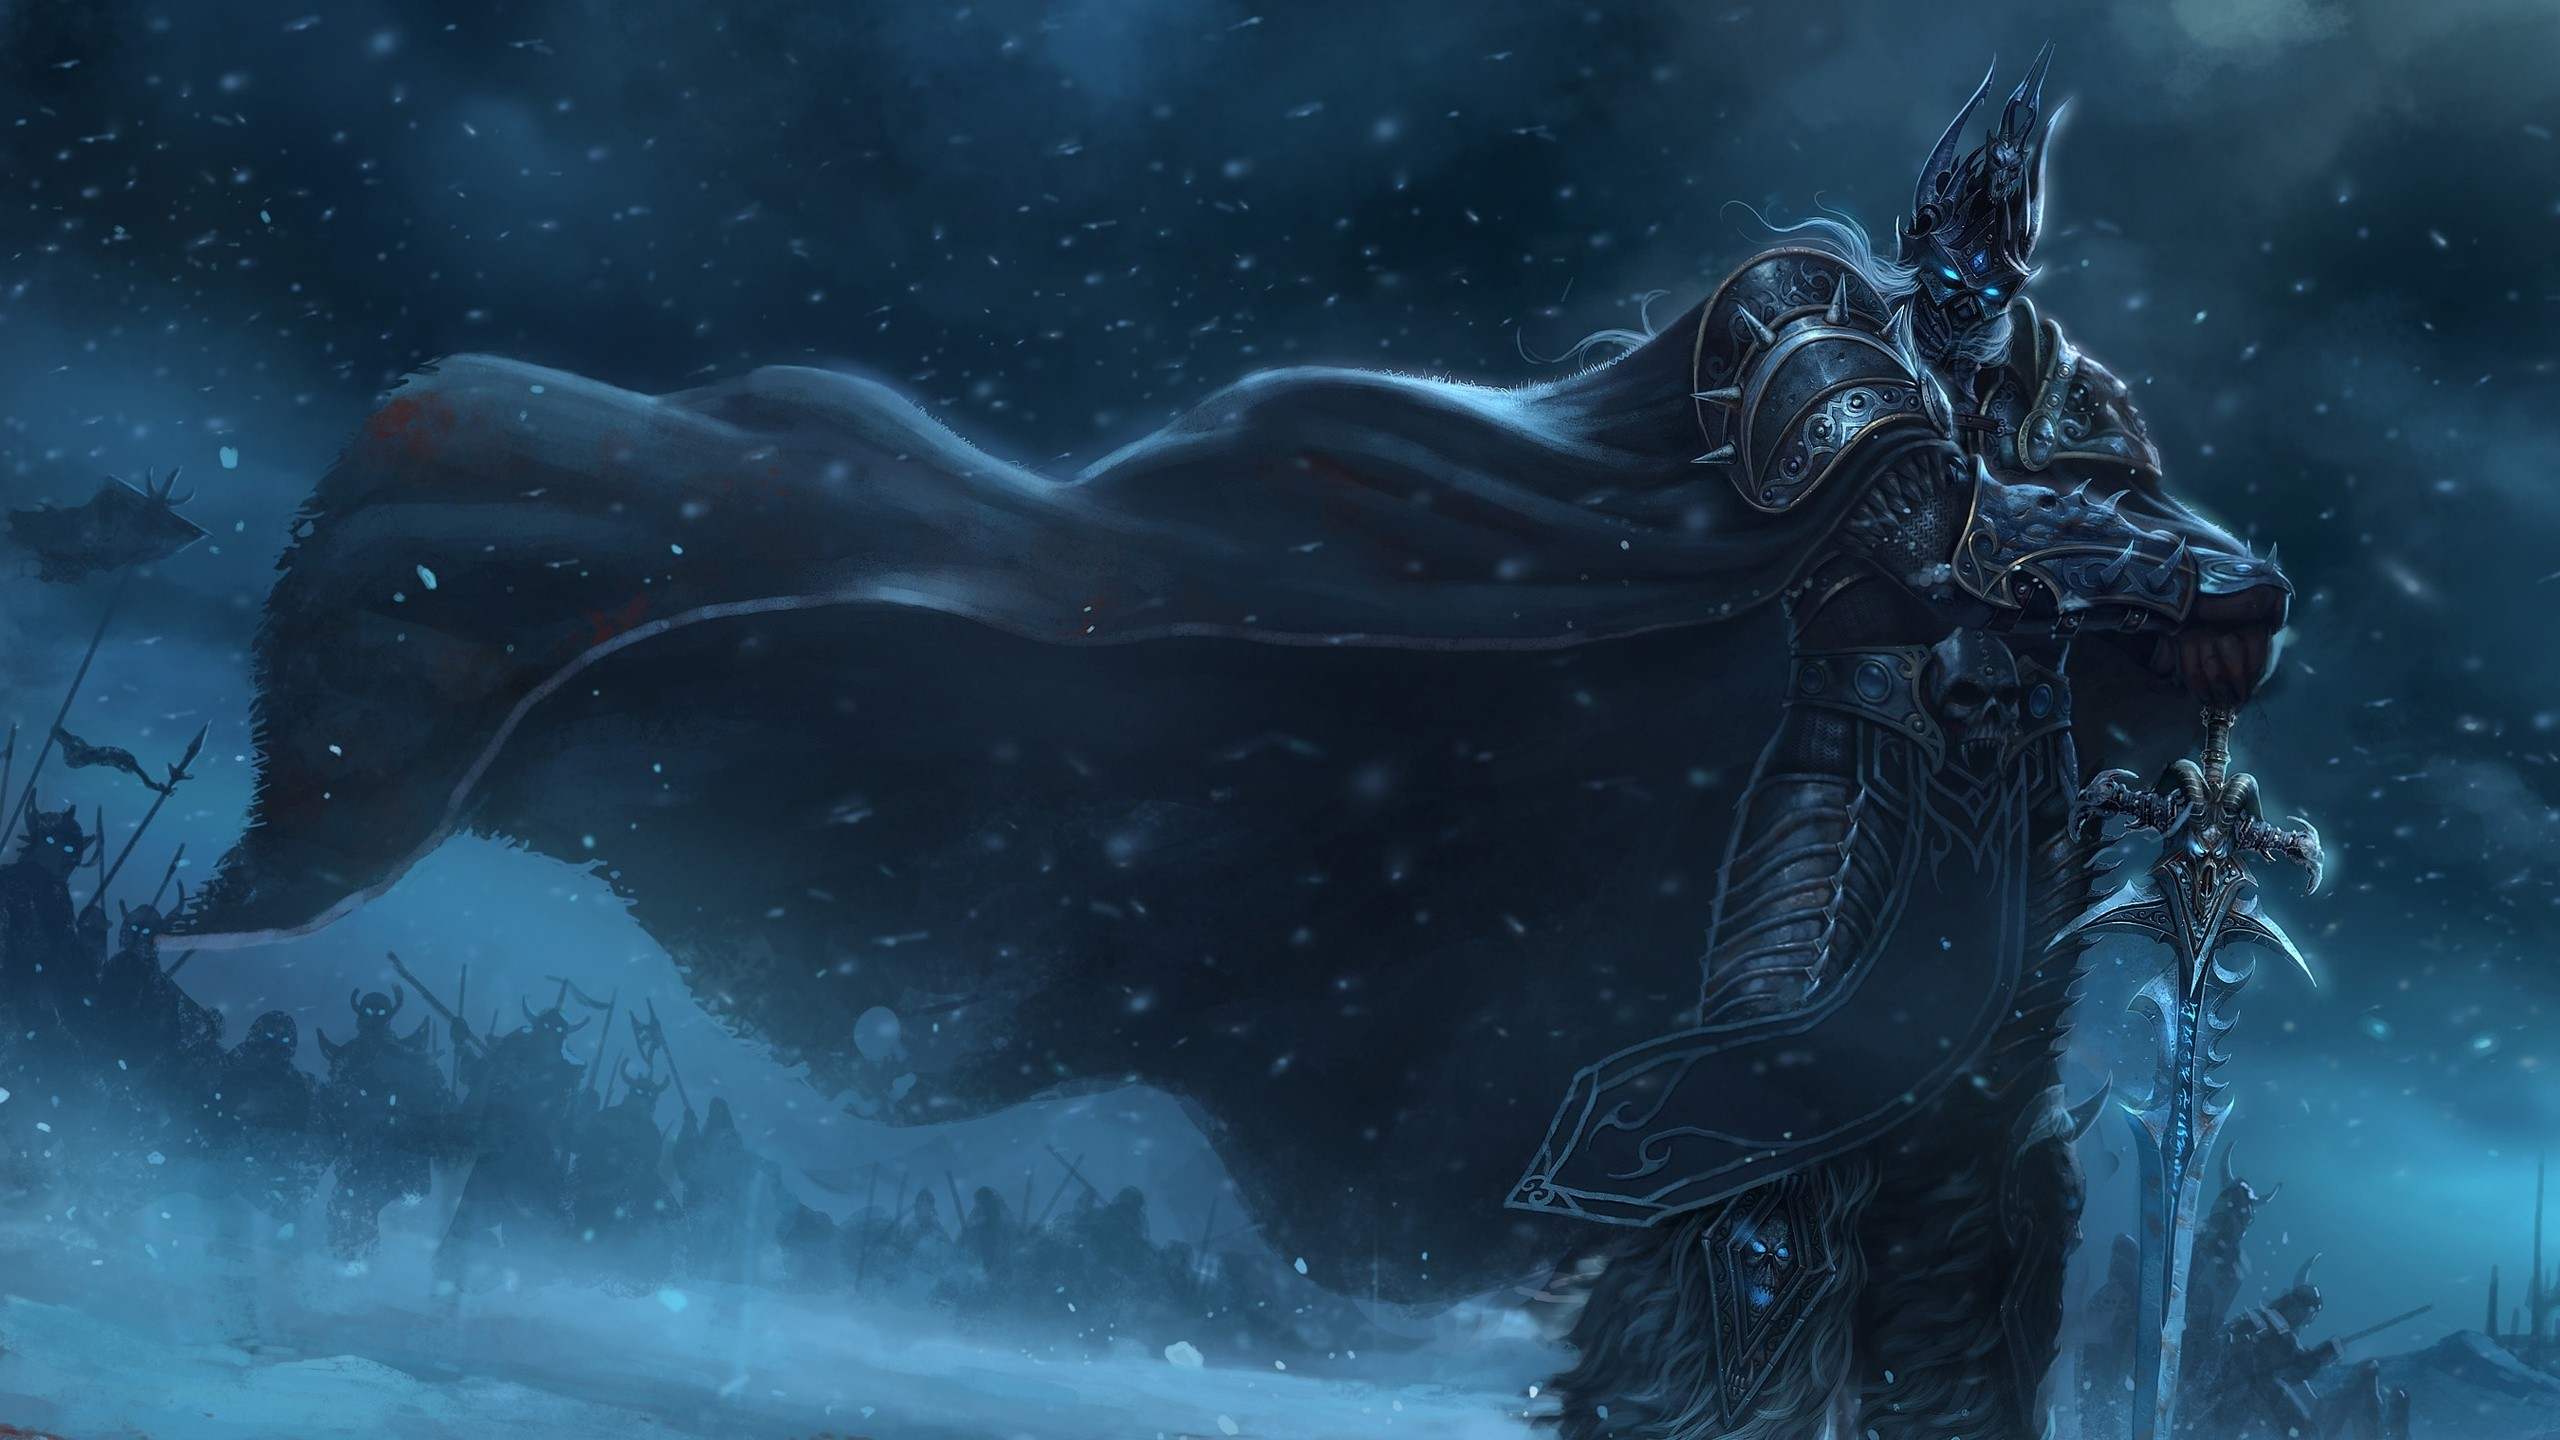 Death Knight Hd Wallpaper 72 Images